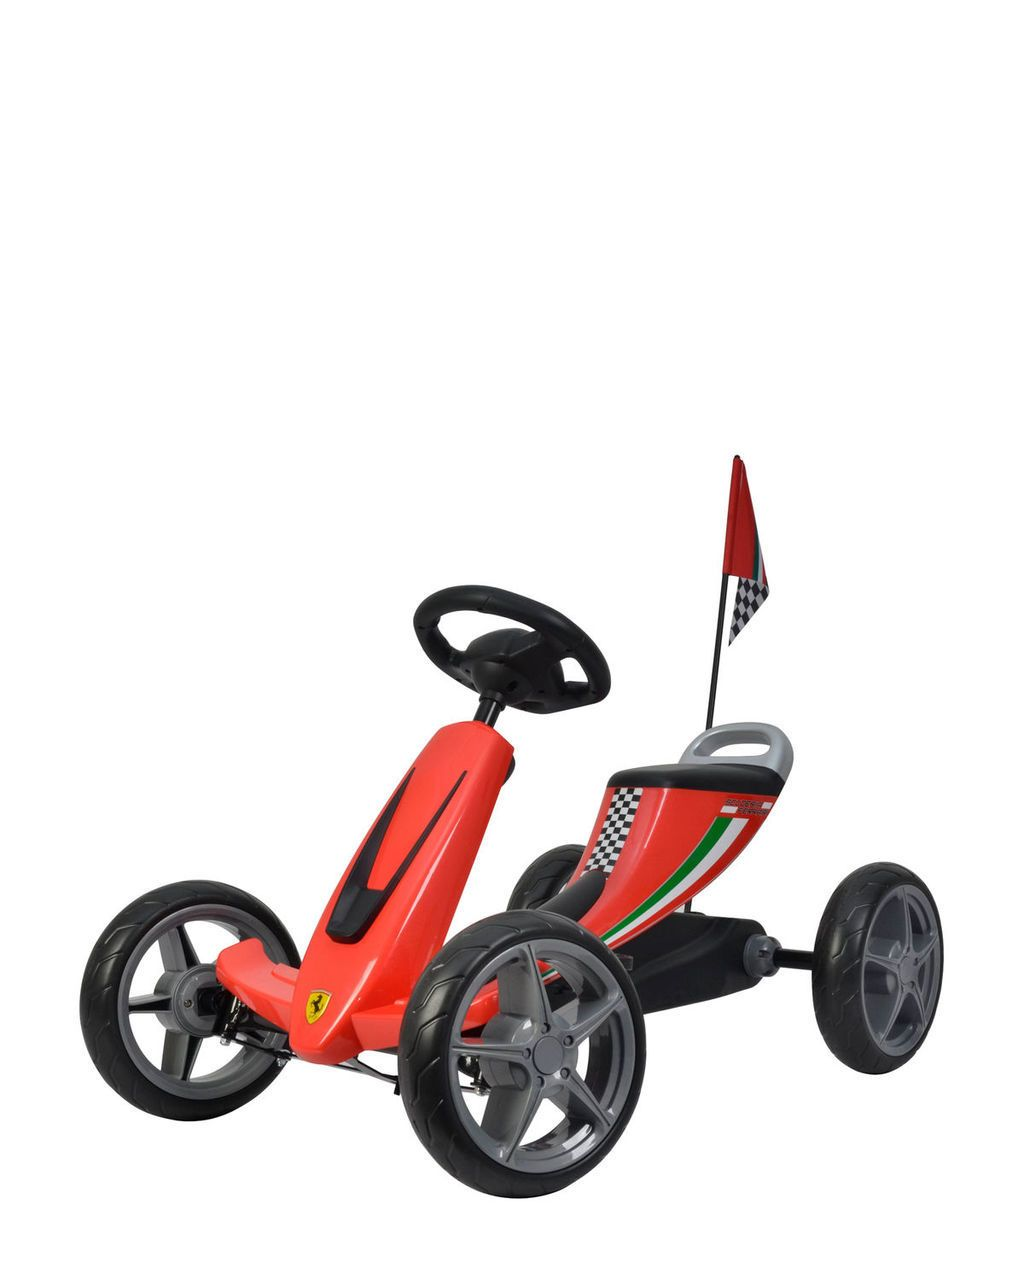 Scuderia Ferrari Pedal Go Kart Out Of Stock